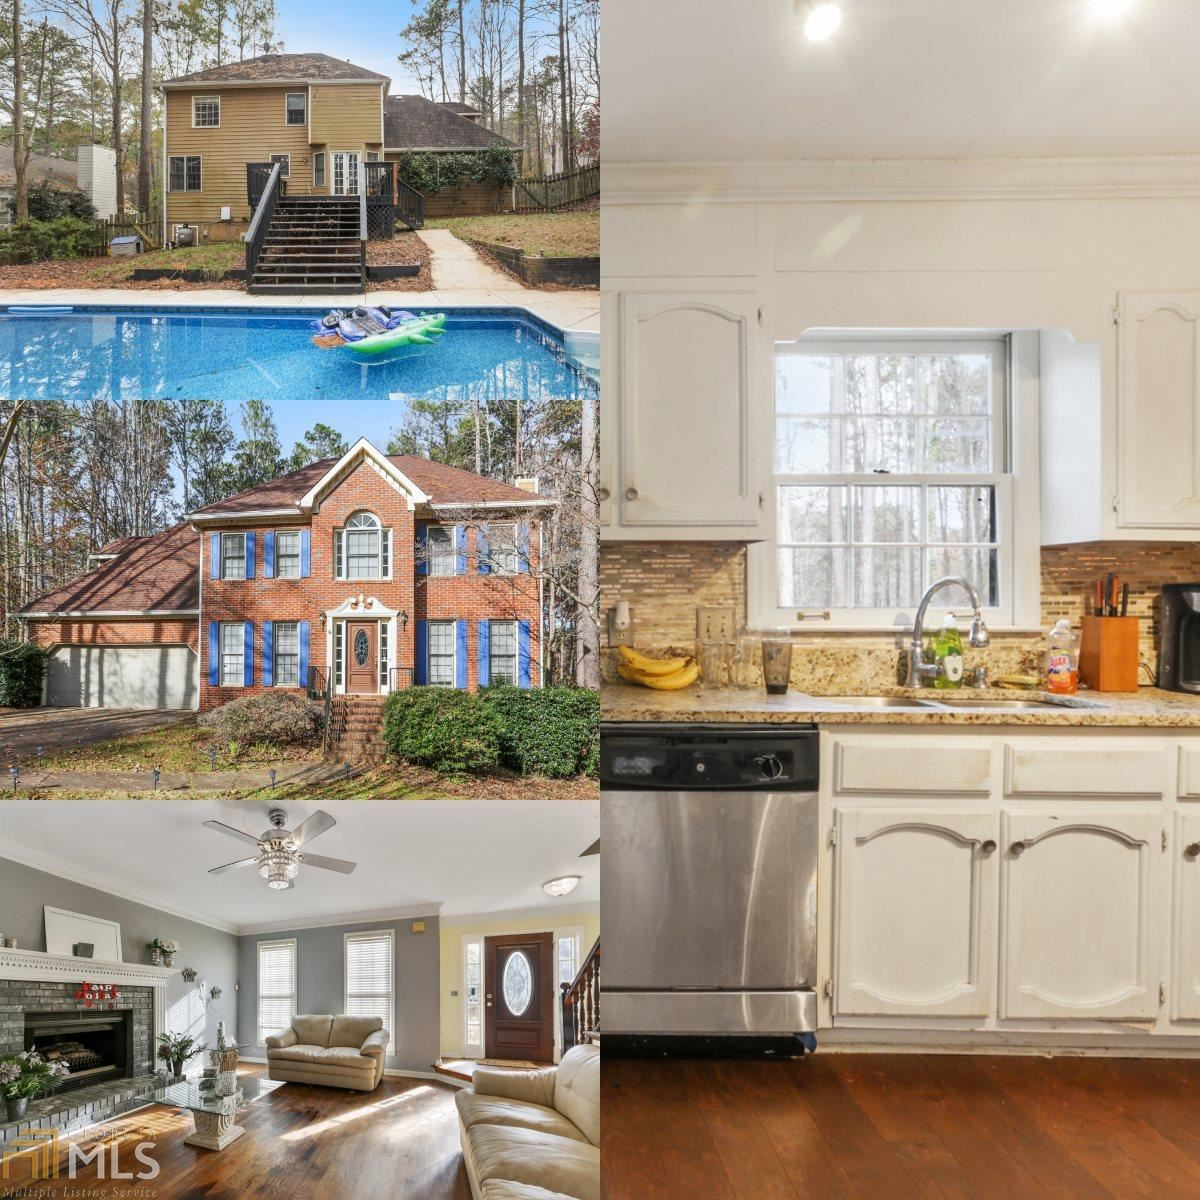 1799 Milford Creek Cts, Marietta, GA 30008 - MLS#: 8895312